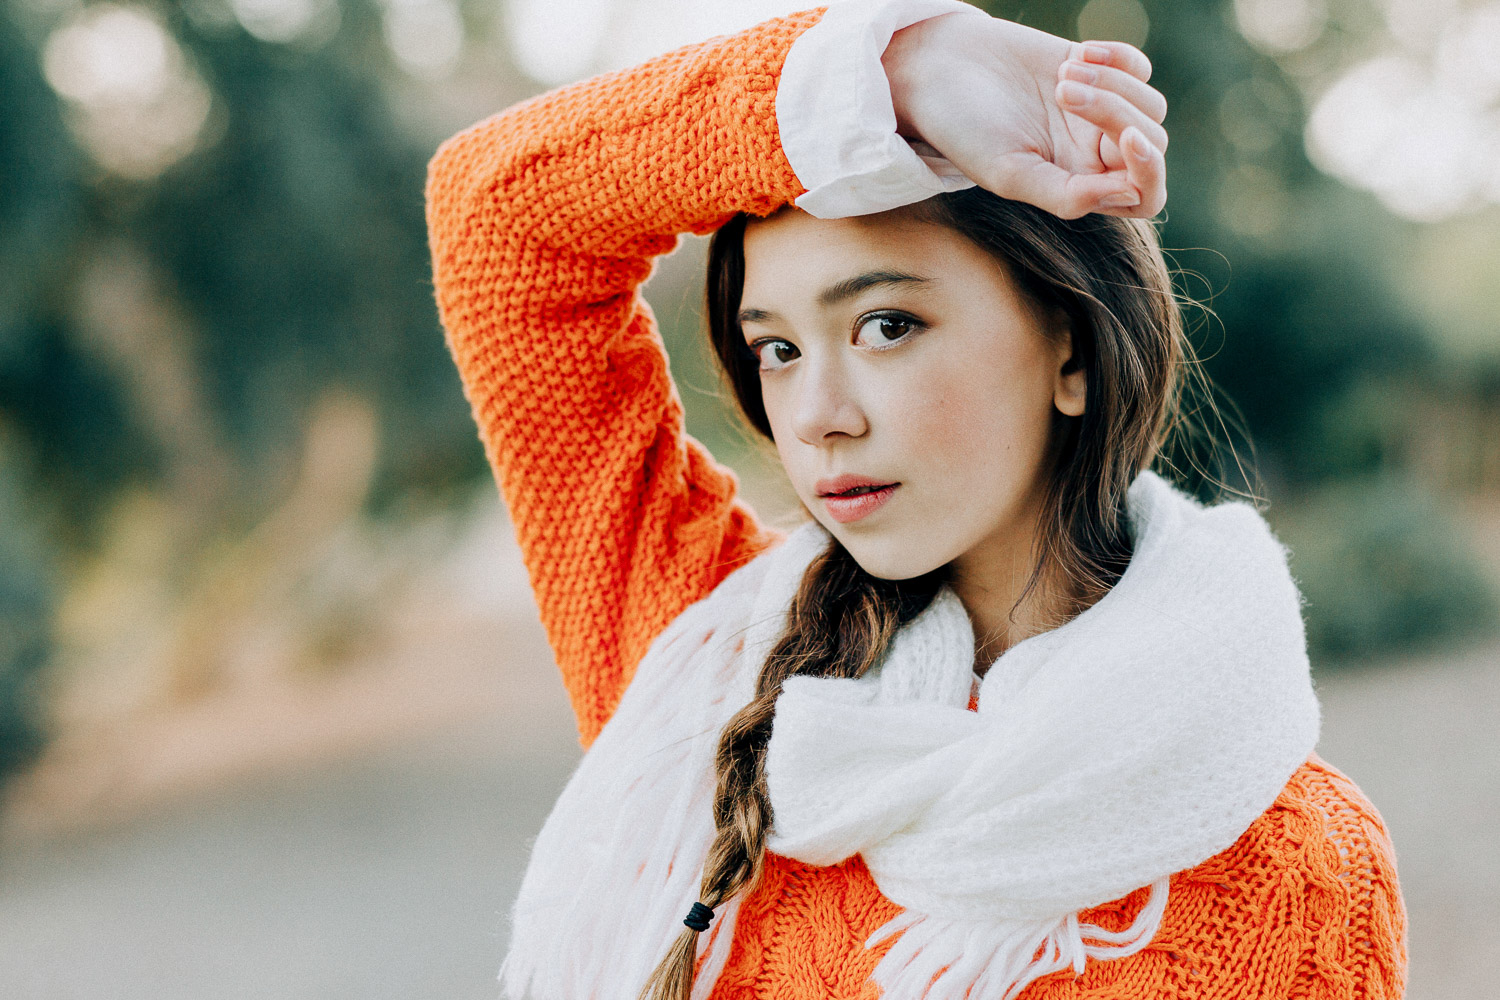 Image of an orange sweater girl puts her arm on her forehead